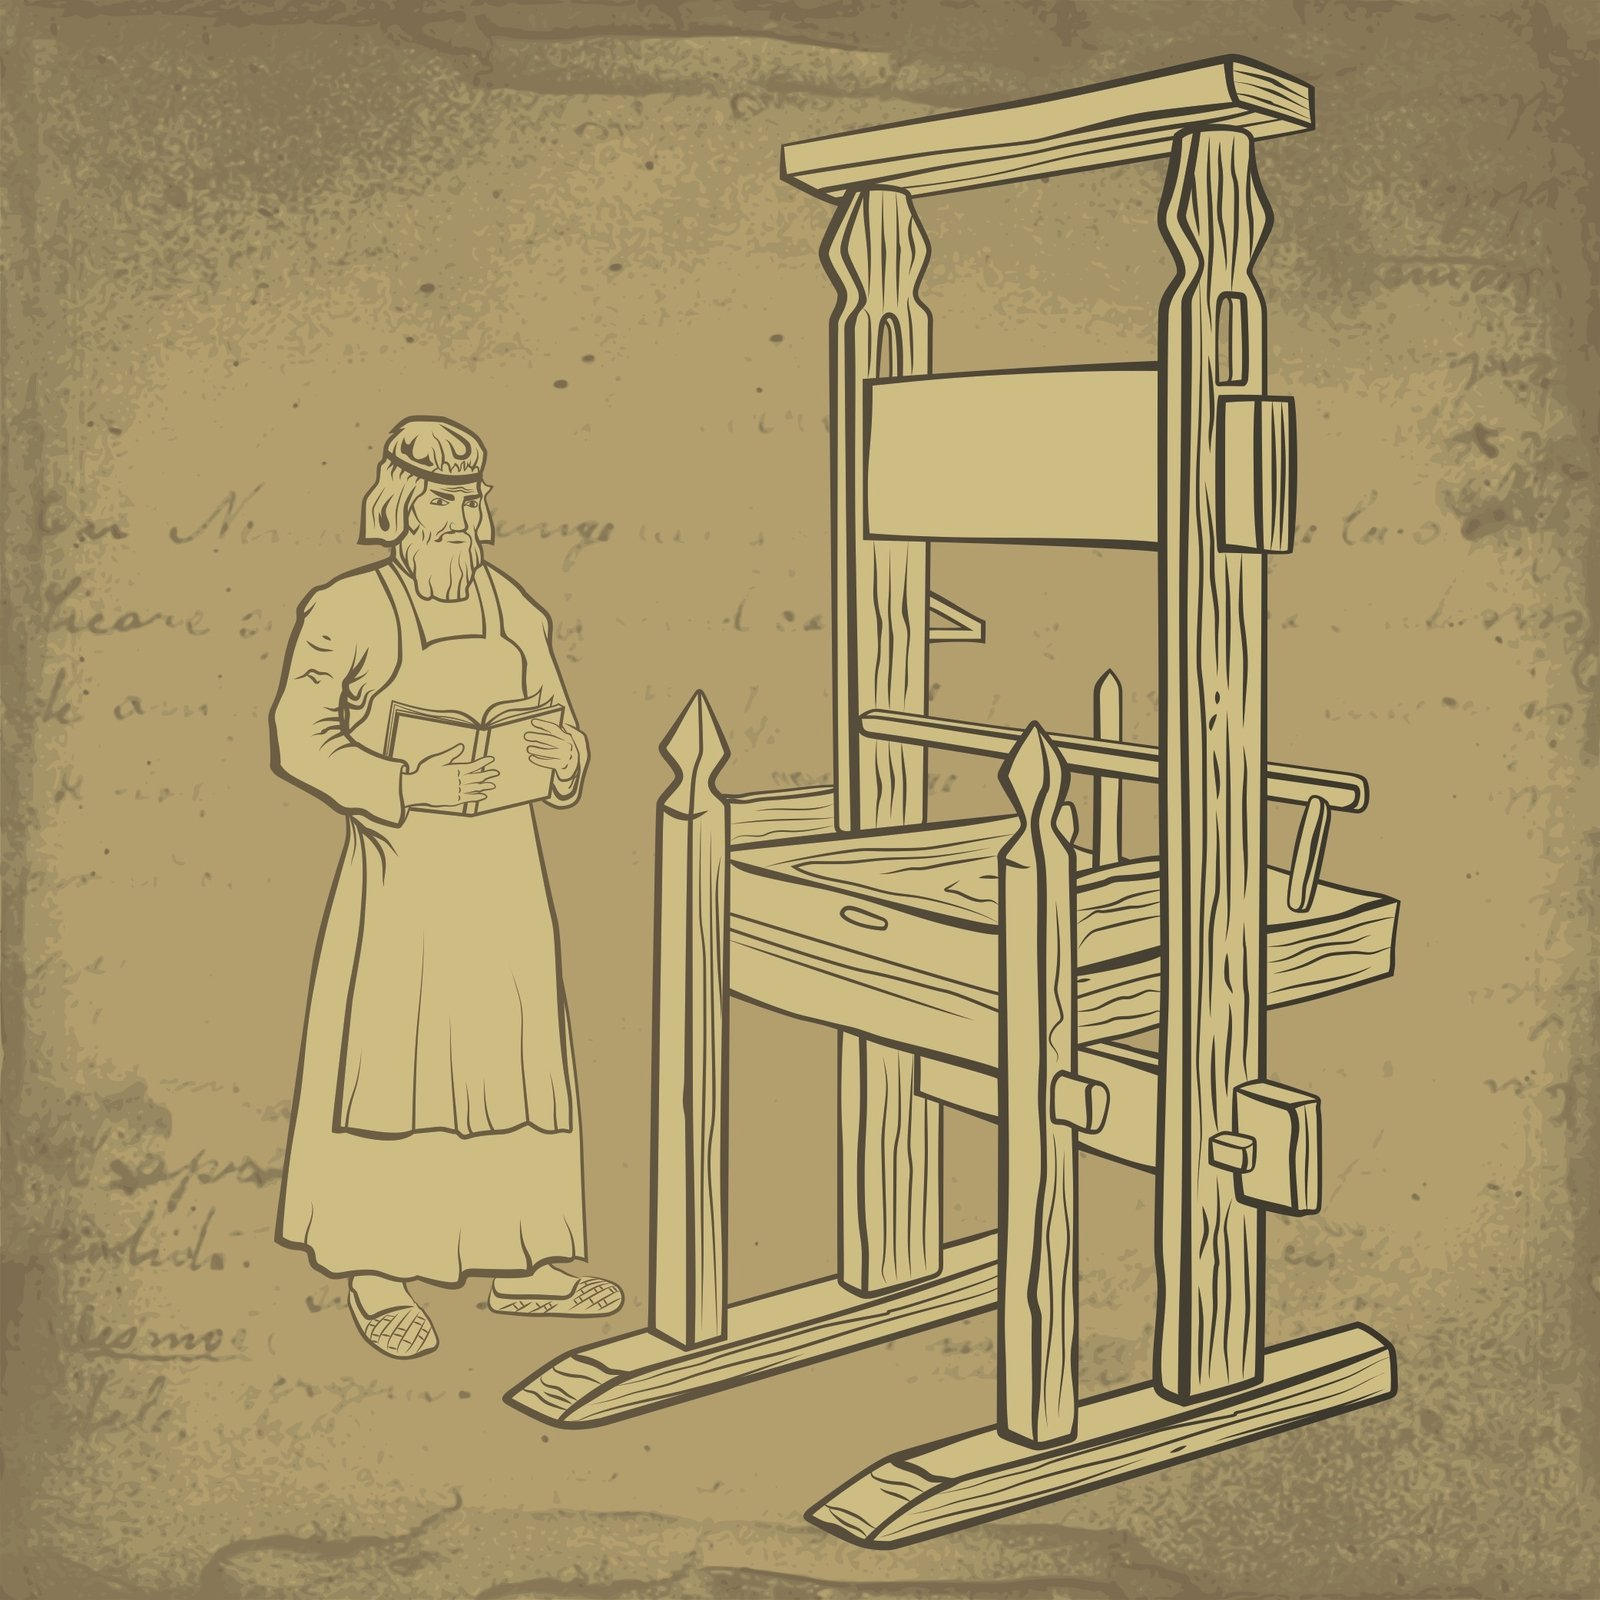 Image - Gutenberg Printing Press